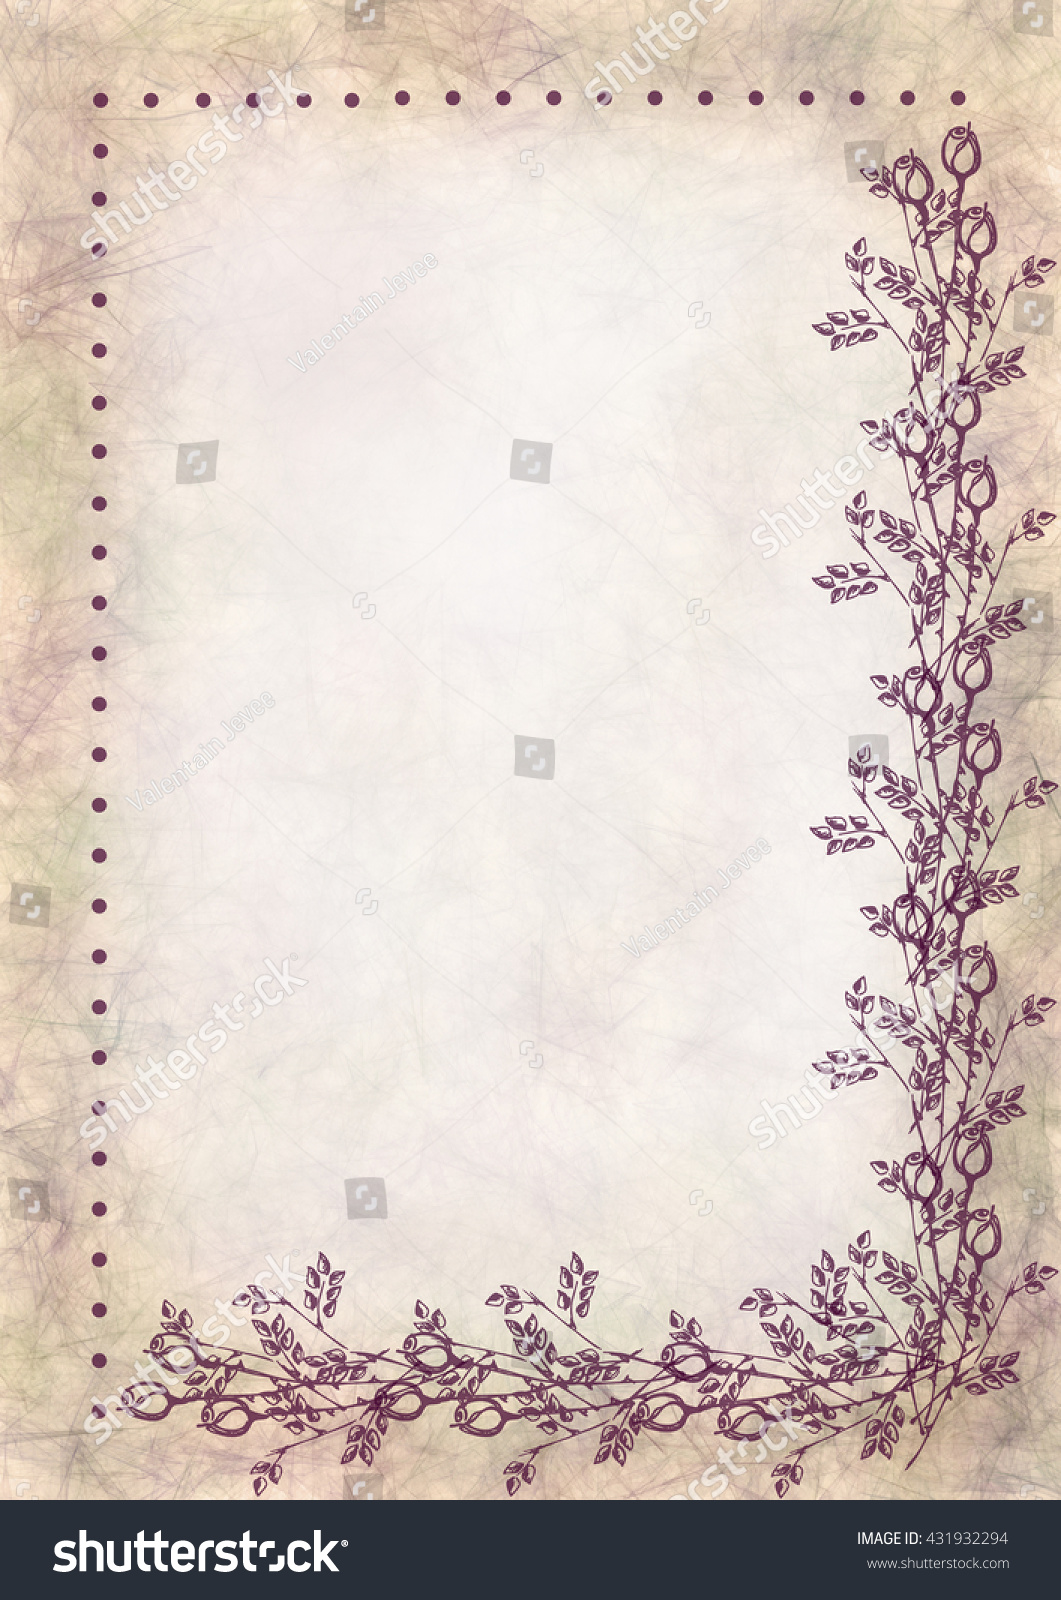 hand drawn textured floral background crumpled paper stock